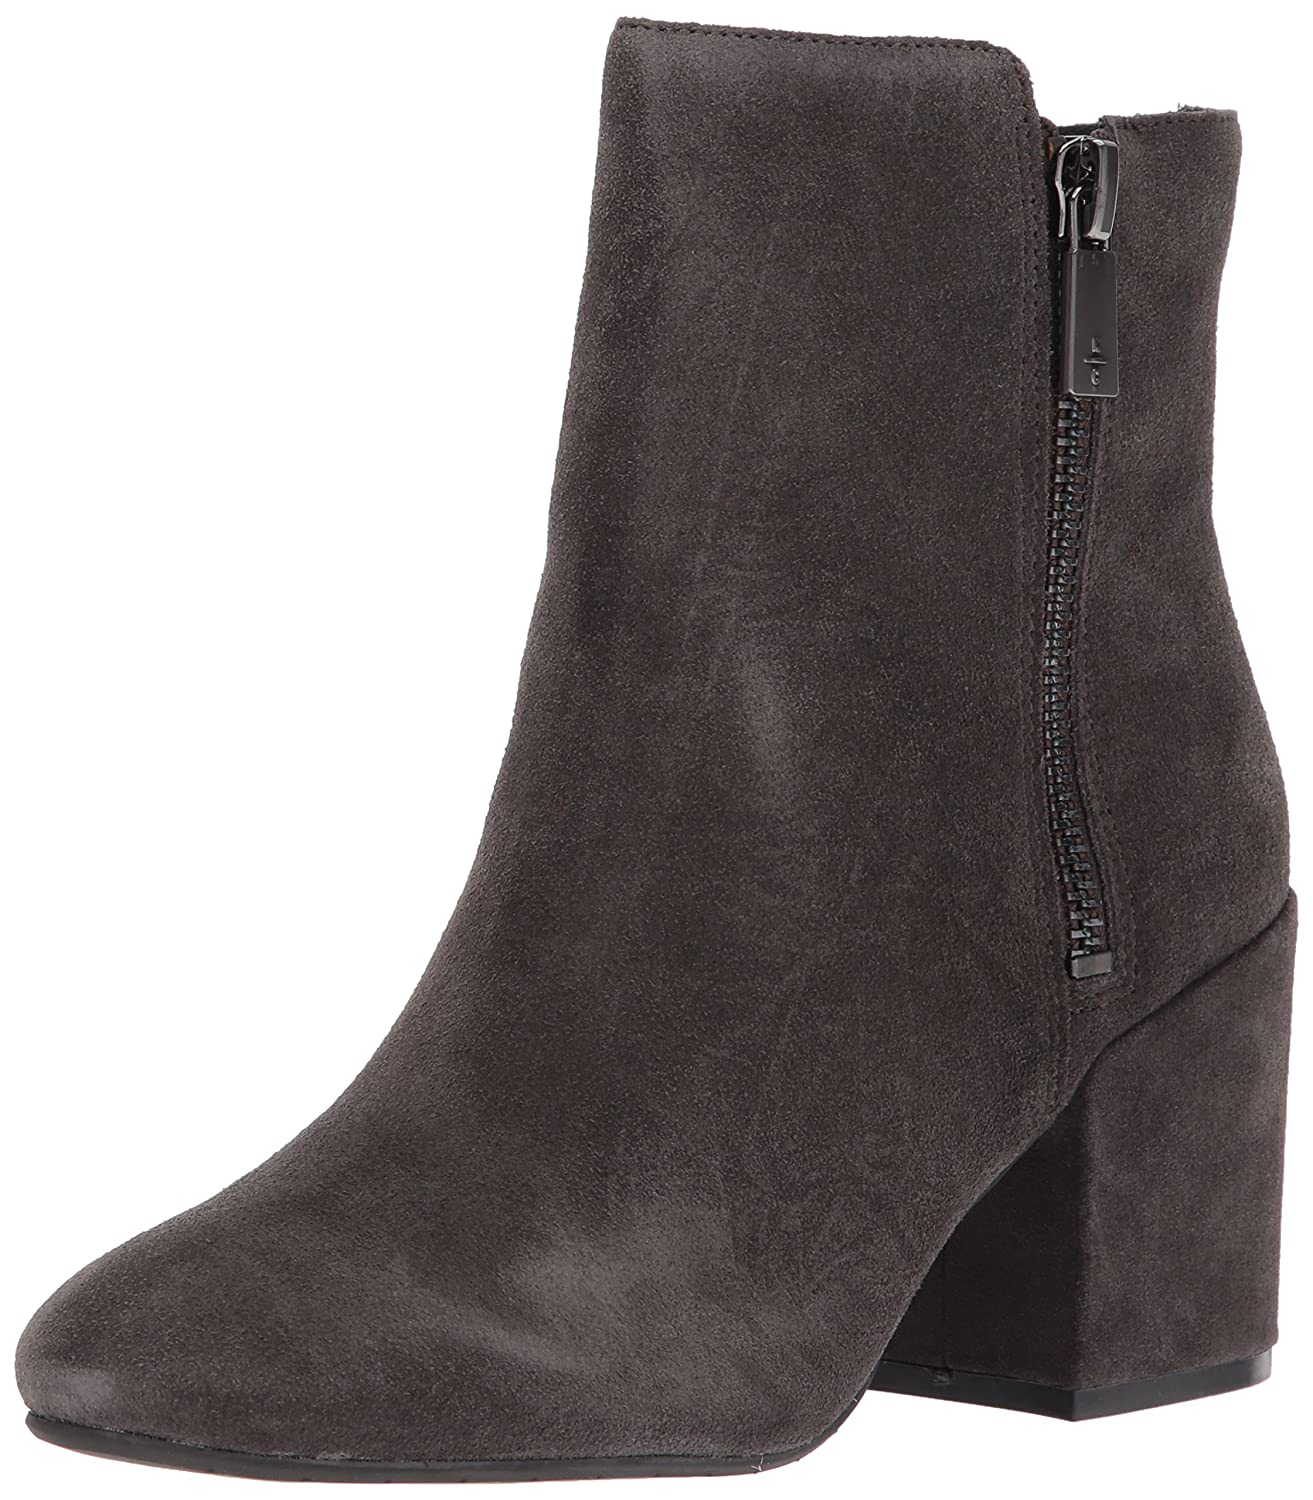 Kenneth Cole New York Women's Rima Bootie with Double Zip Block Heel Suede Boot B0727VYXQV 5 B(M) US|Asphault